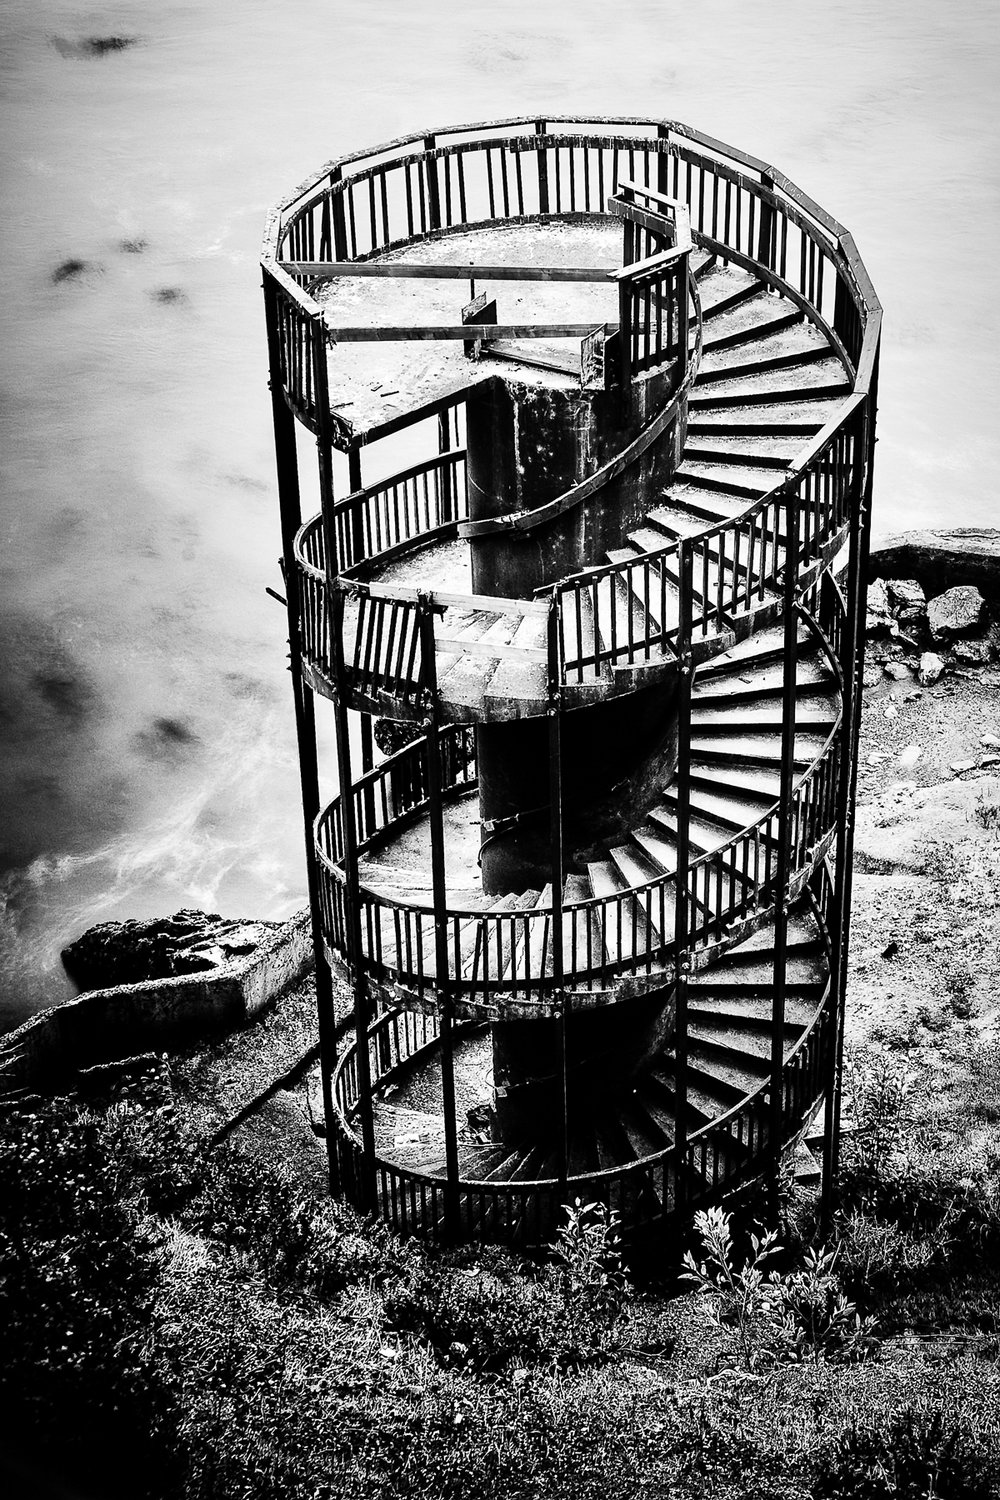 STAIRCASE TO NOWHERE